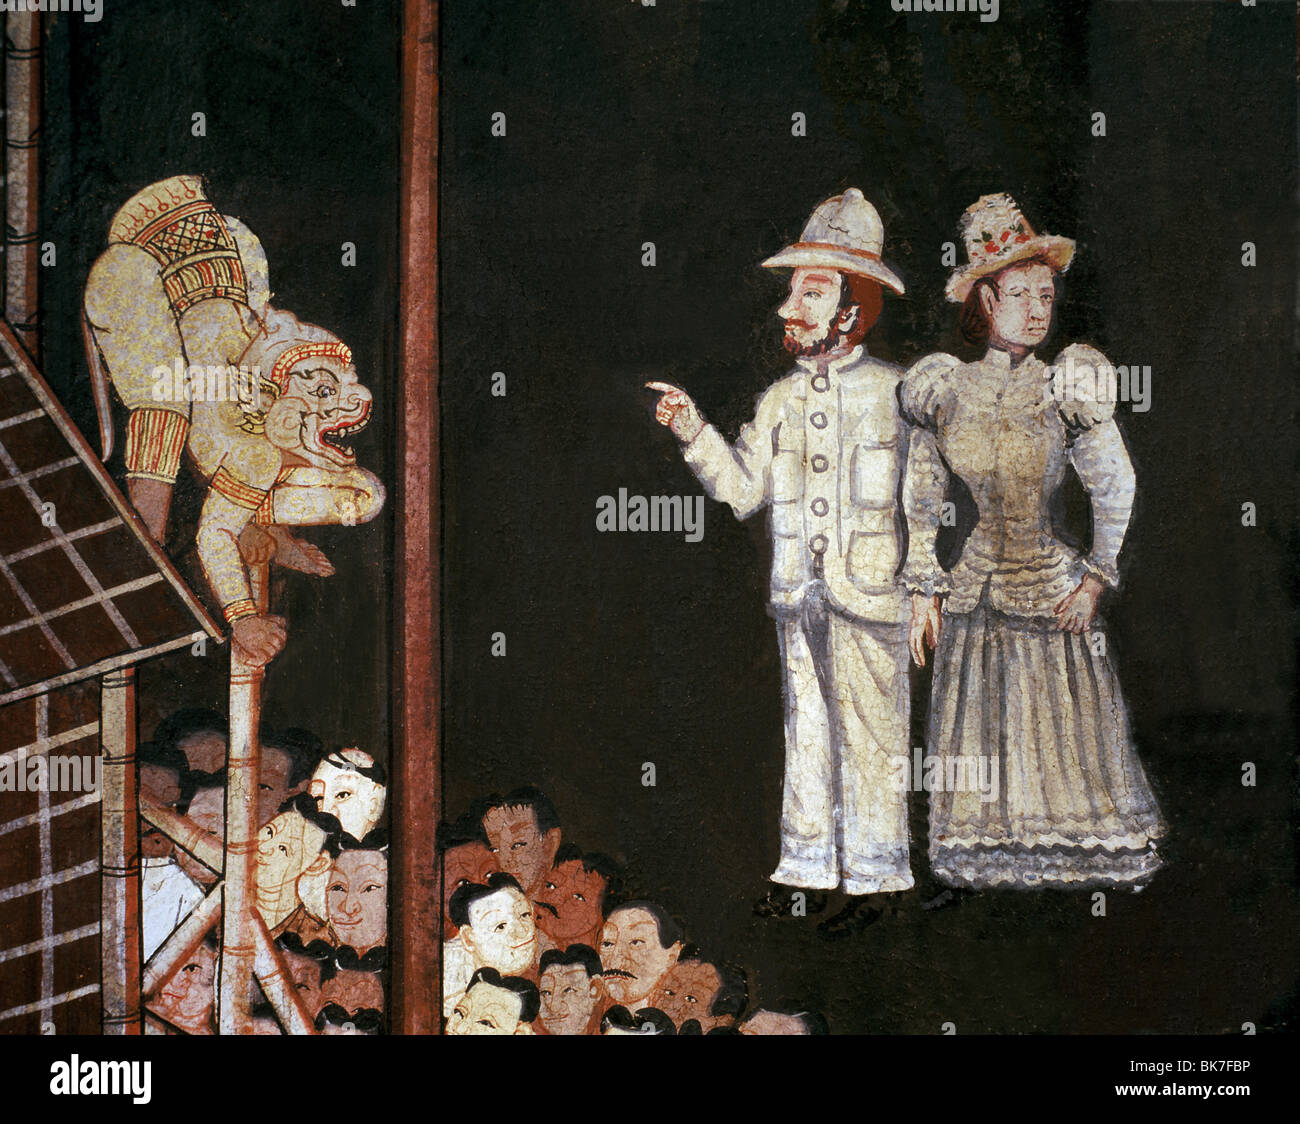 Early 20th century mural showing foreigners viewing a Ramakien show, Wat Benjamabopit, Bangkok, Thailand, Southeast - Stock Image